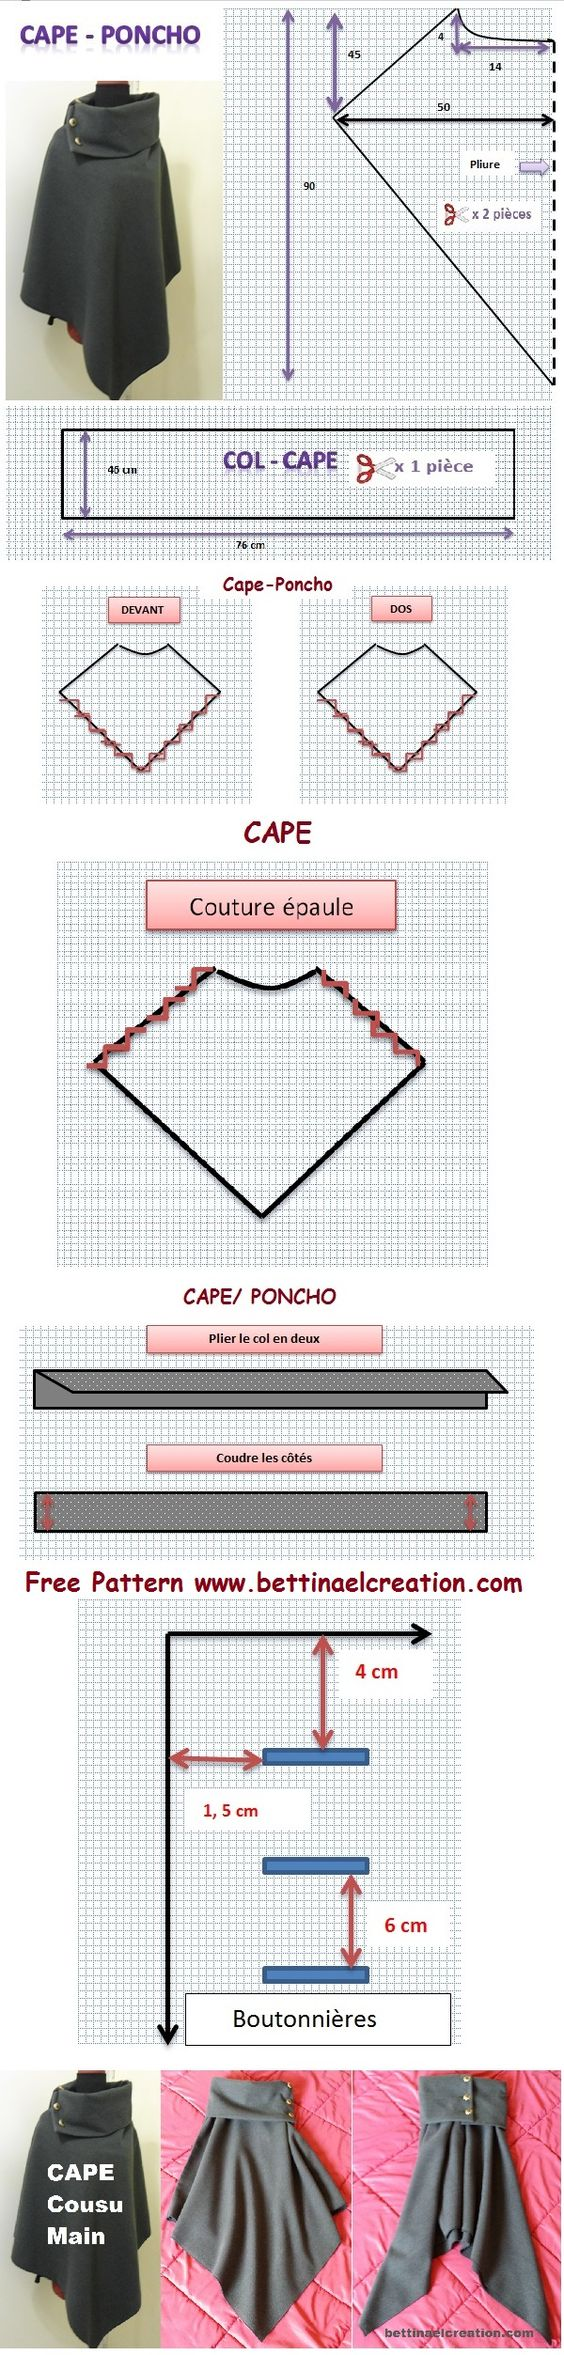 tuto gratuit free pattern couture sewing diy cape poncho do it yourself couture. Black Bedroom Furniture Sets. Home Design Ideas